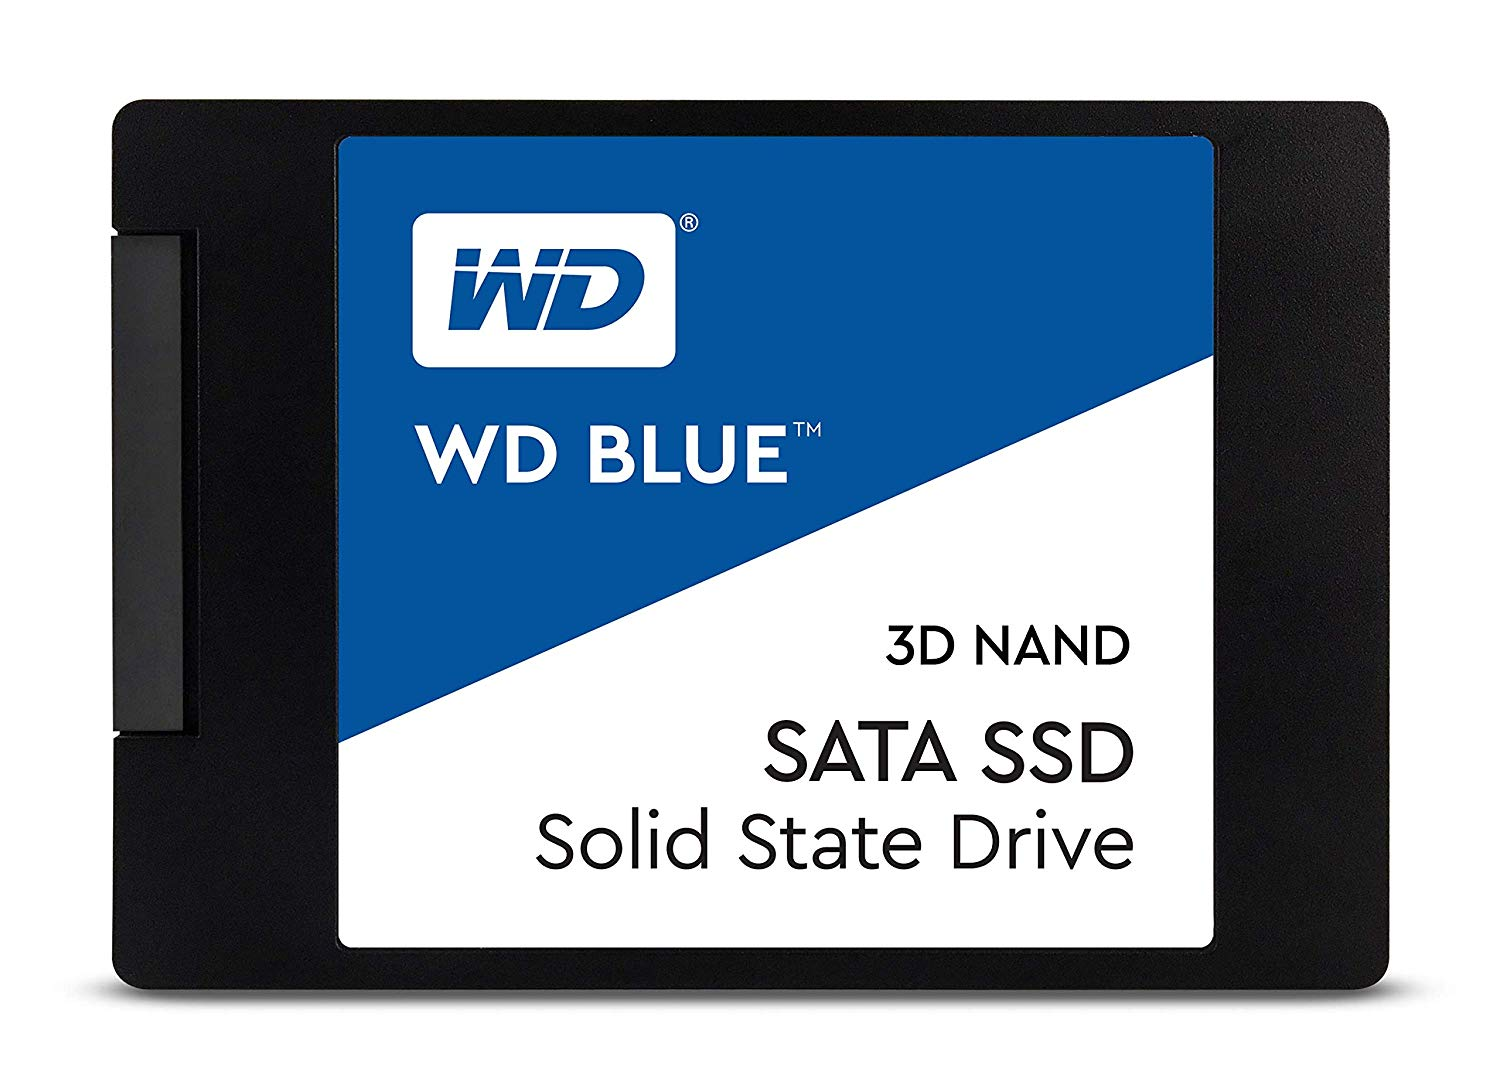 6 SSD - WD Blue 3D NAND 500GB PC SSD - Best $700 PC Build 2019